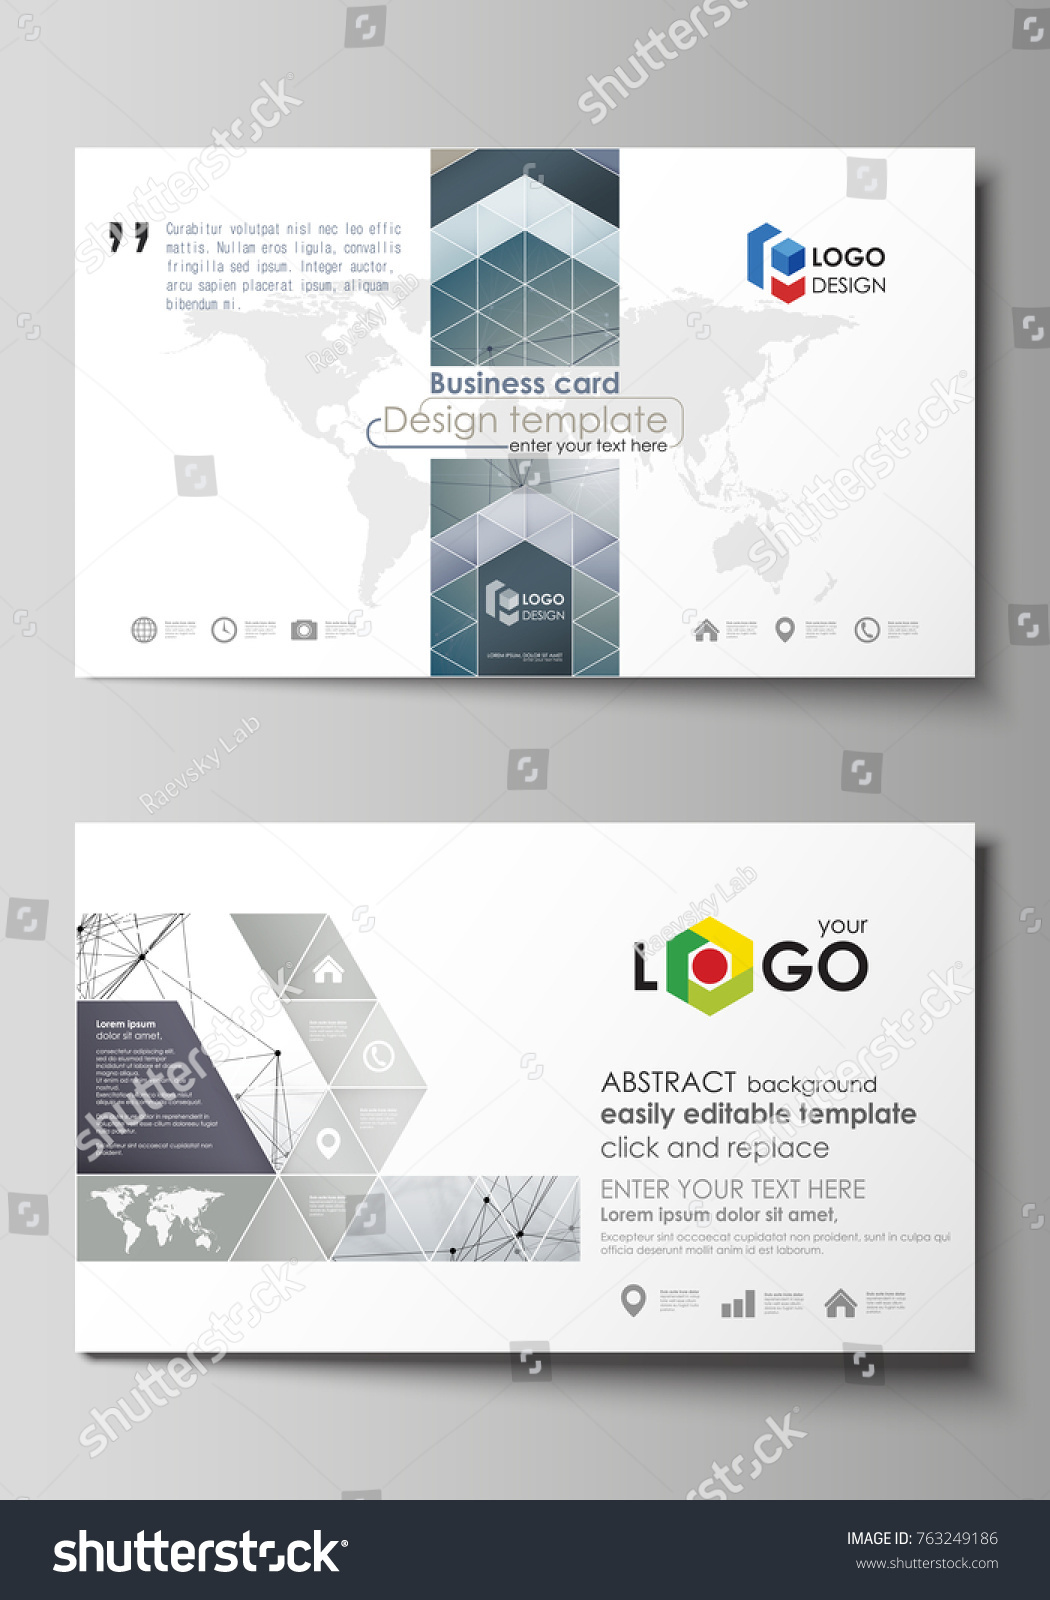 Business card text layout gallery free business cards business card text layout gallery free business cards business card templates easy editable layout stock vector magicingreecefo Choice Image